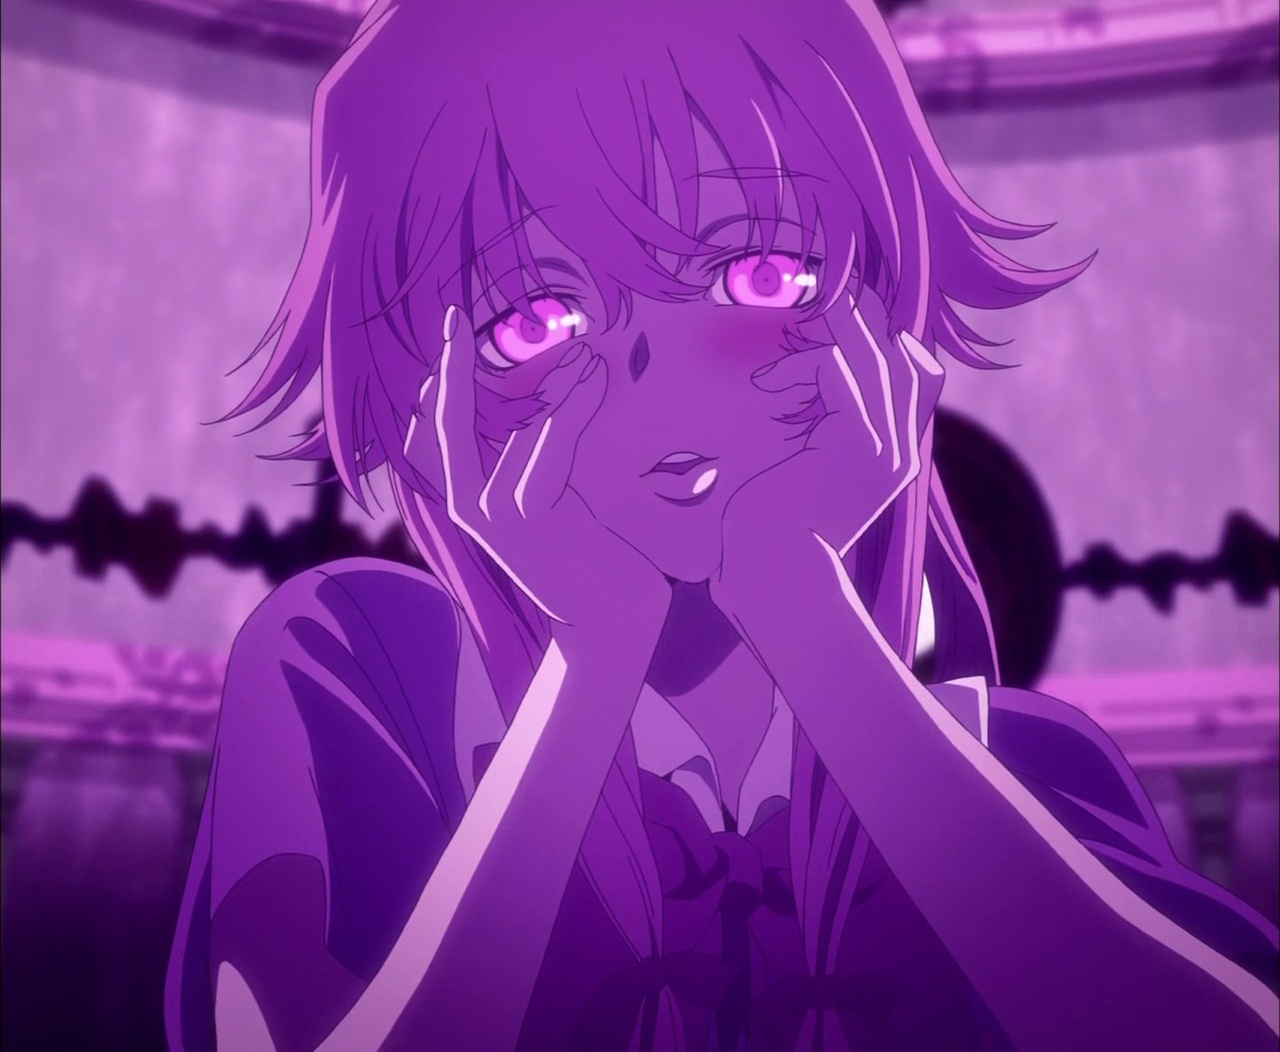 Mirai Nikki :3 MJV-ART.ORG_-_150425-1280x1052-mirai+nikki-gasai+yuno-girl-long+hair-blush-pink+eyes